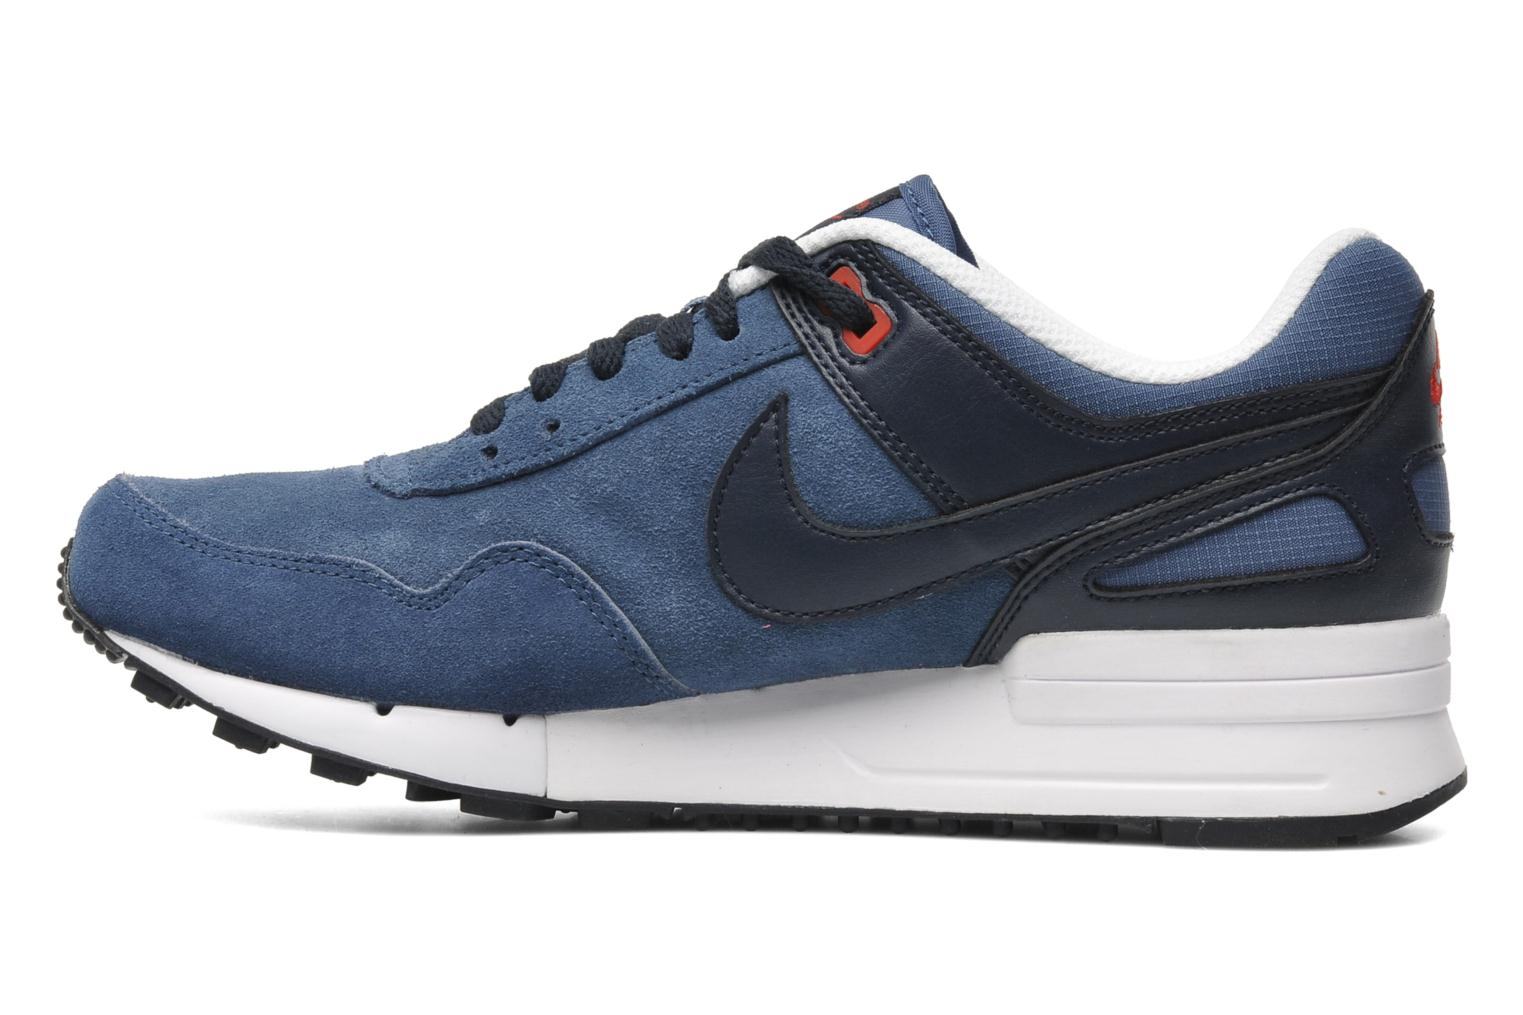 nike air pegasus 89 bleu baskets chez sarenza 189394. Black Bedroom Furniture Sets. Home Design Ideas